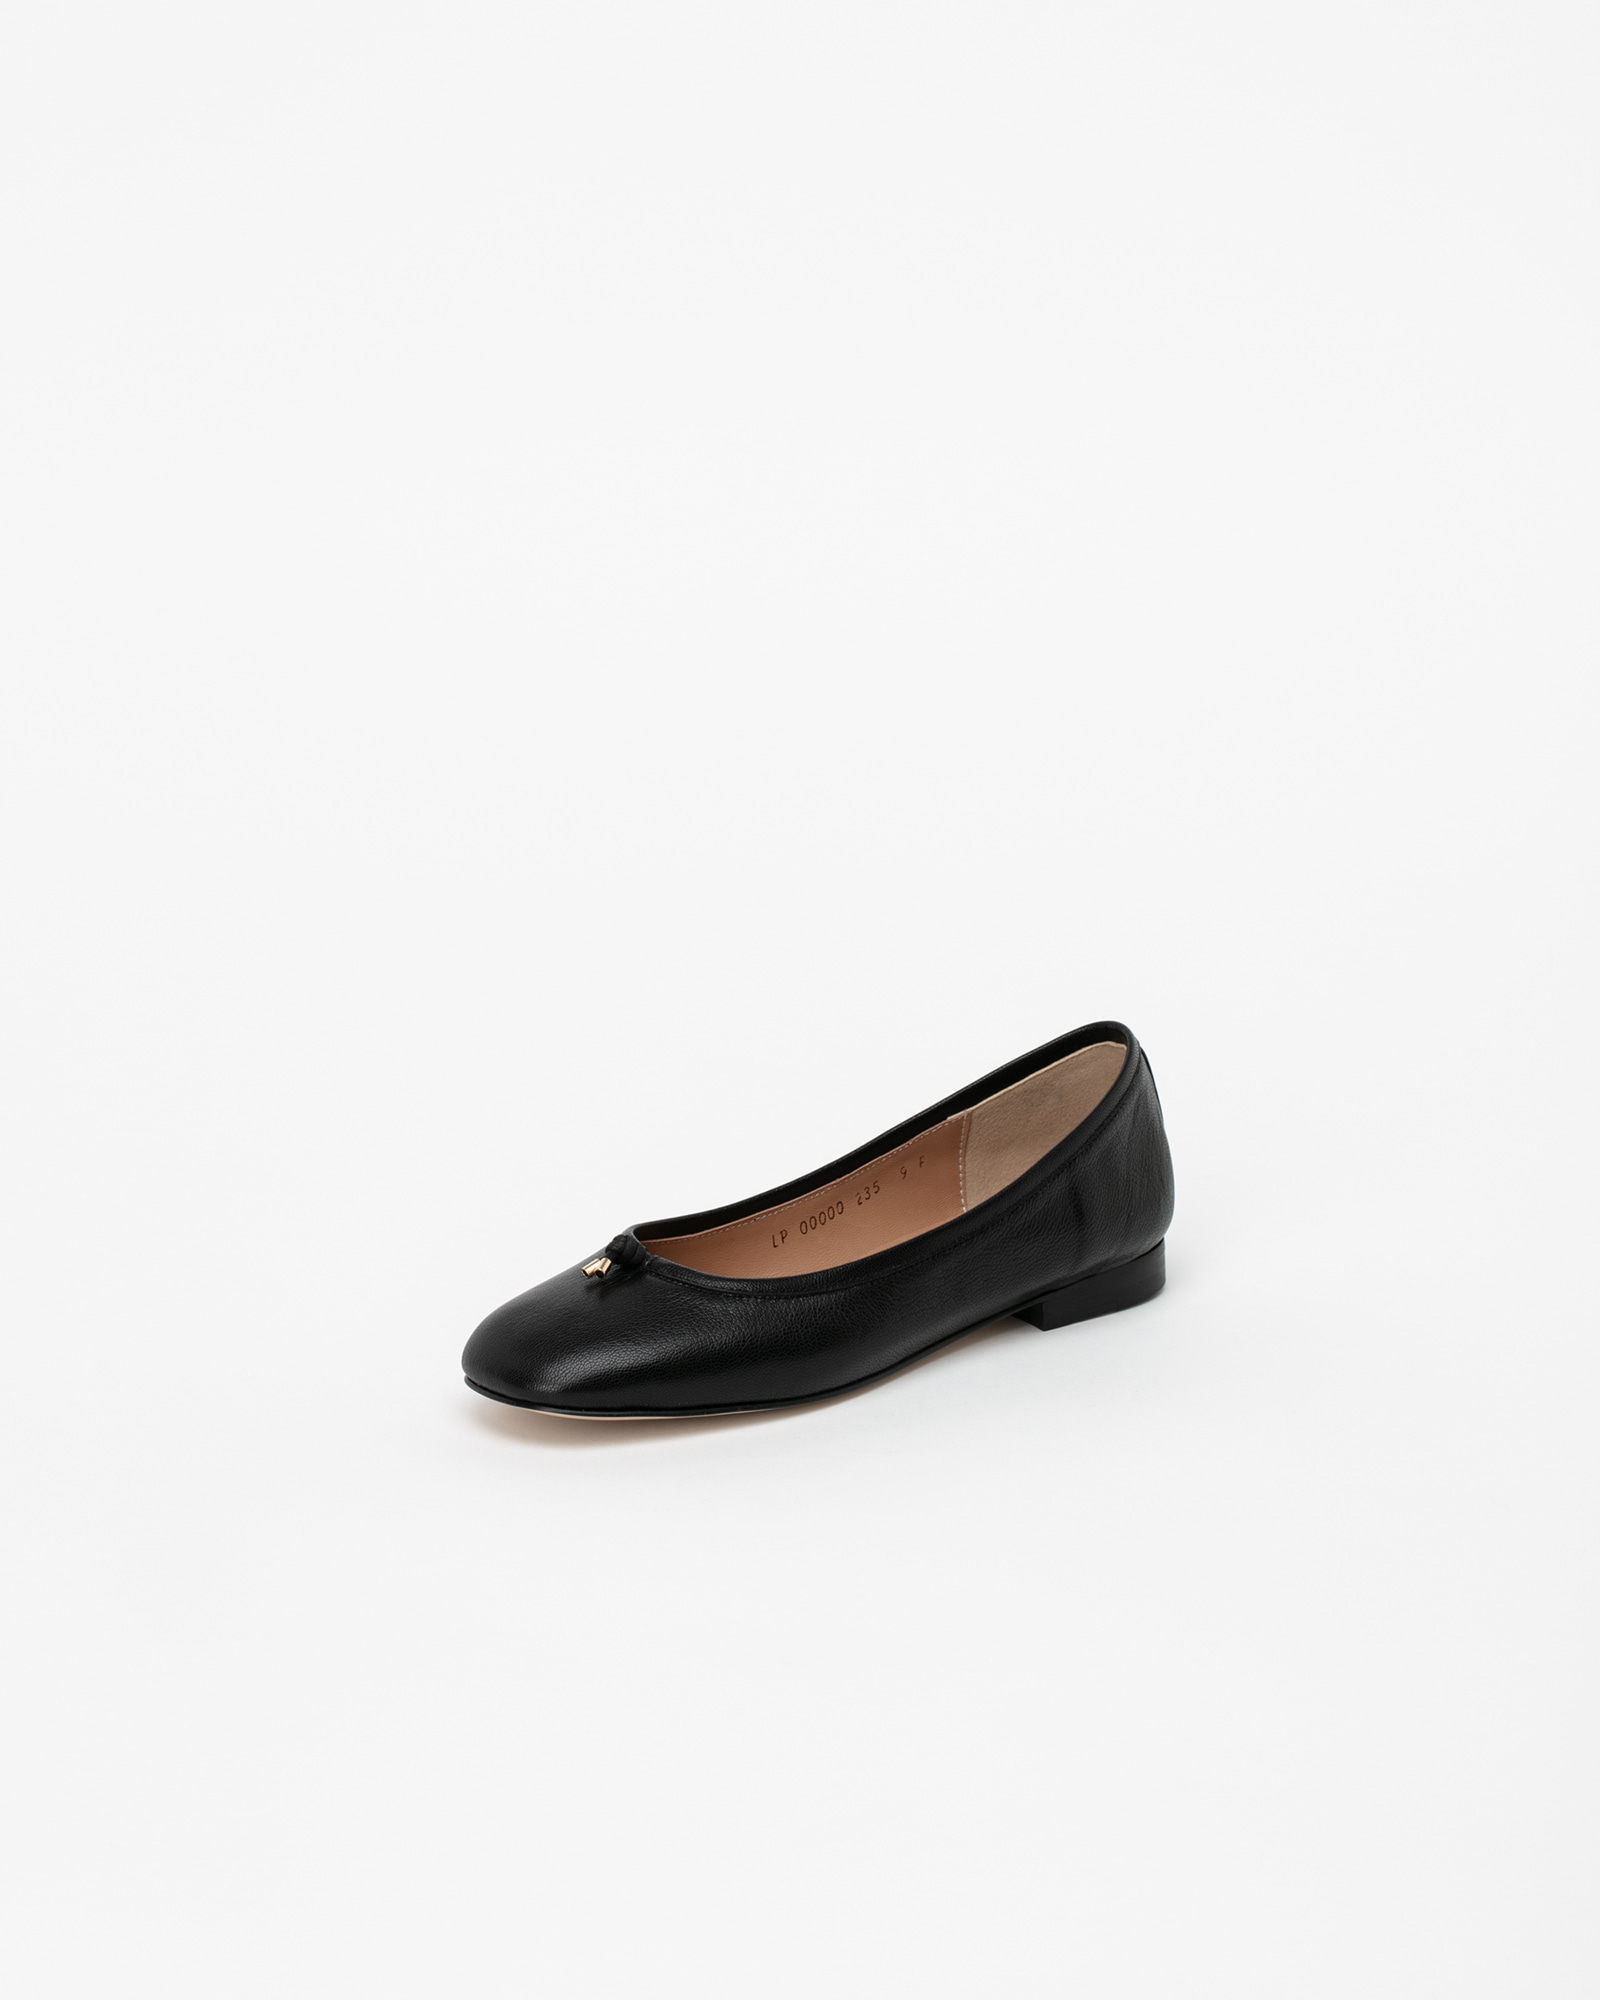 Meringue Soft Flat Shoes in Black